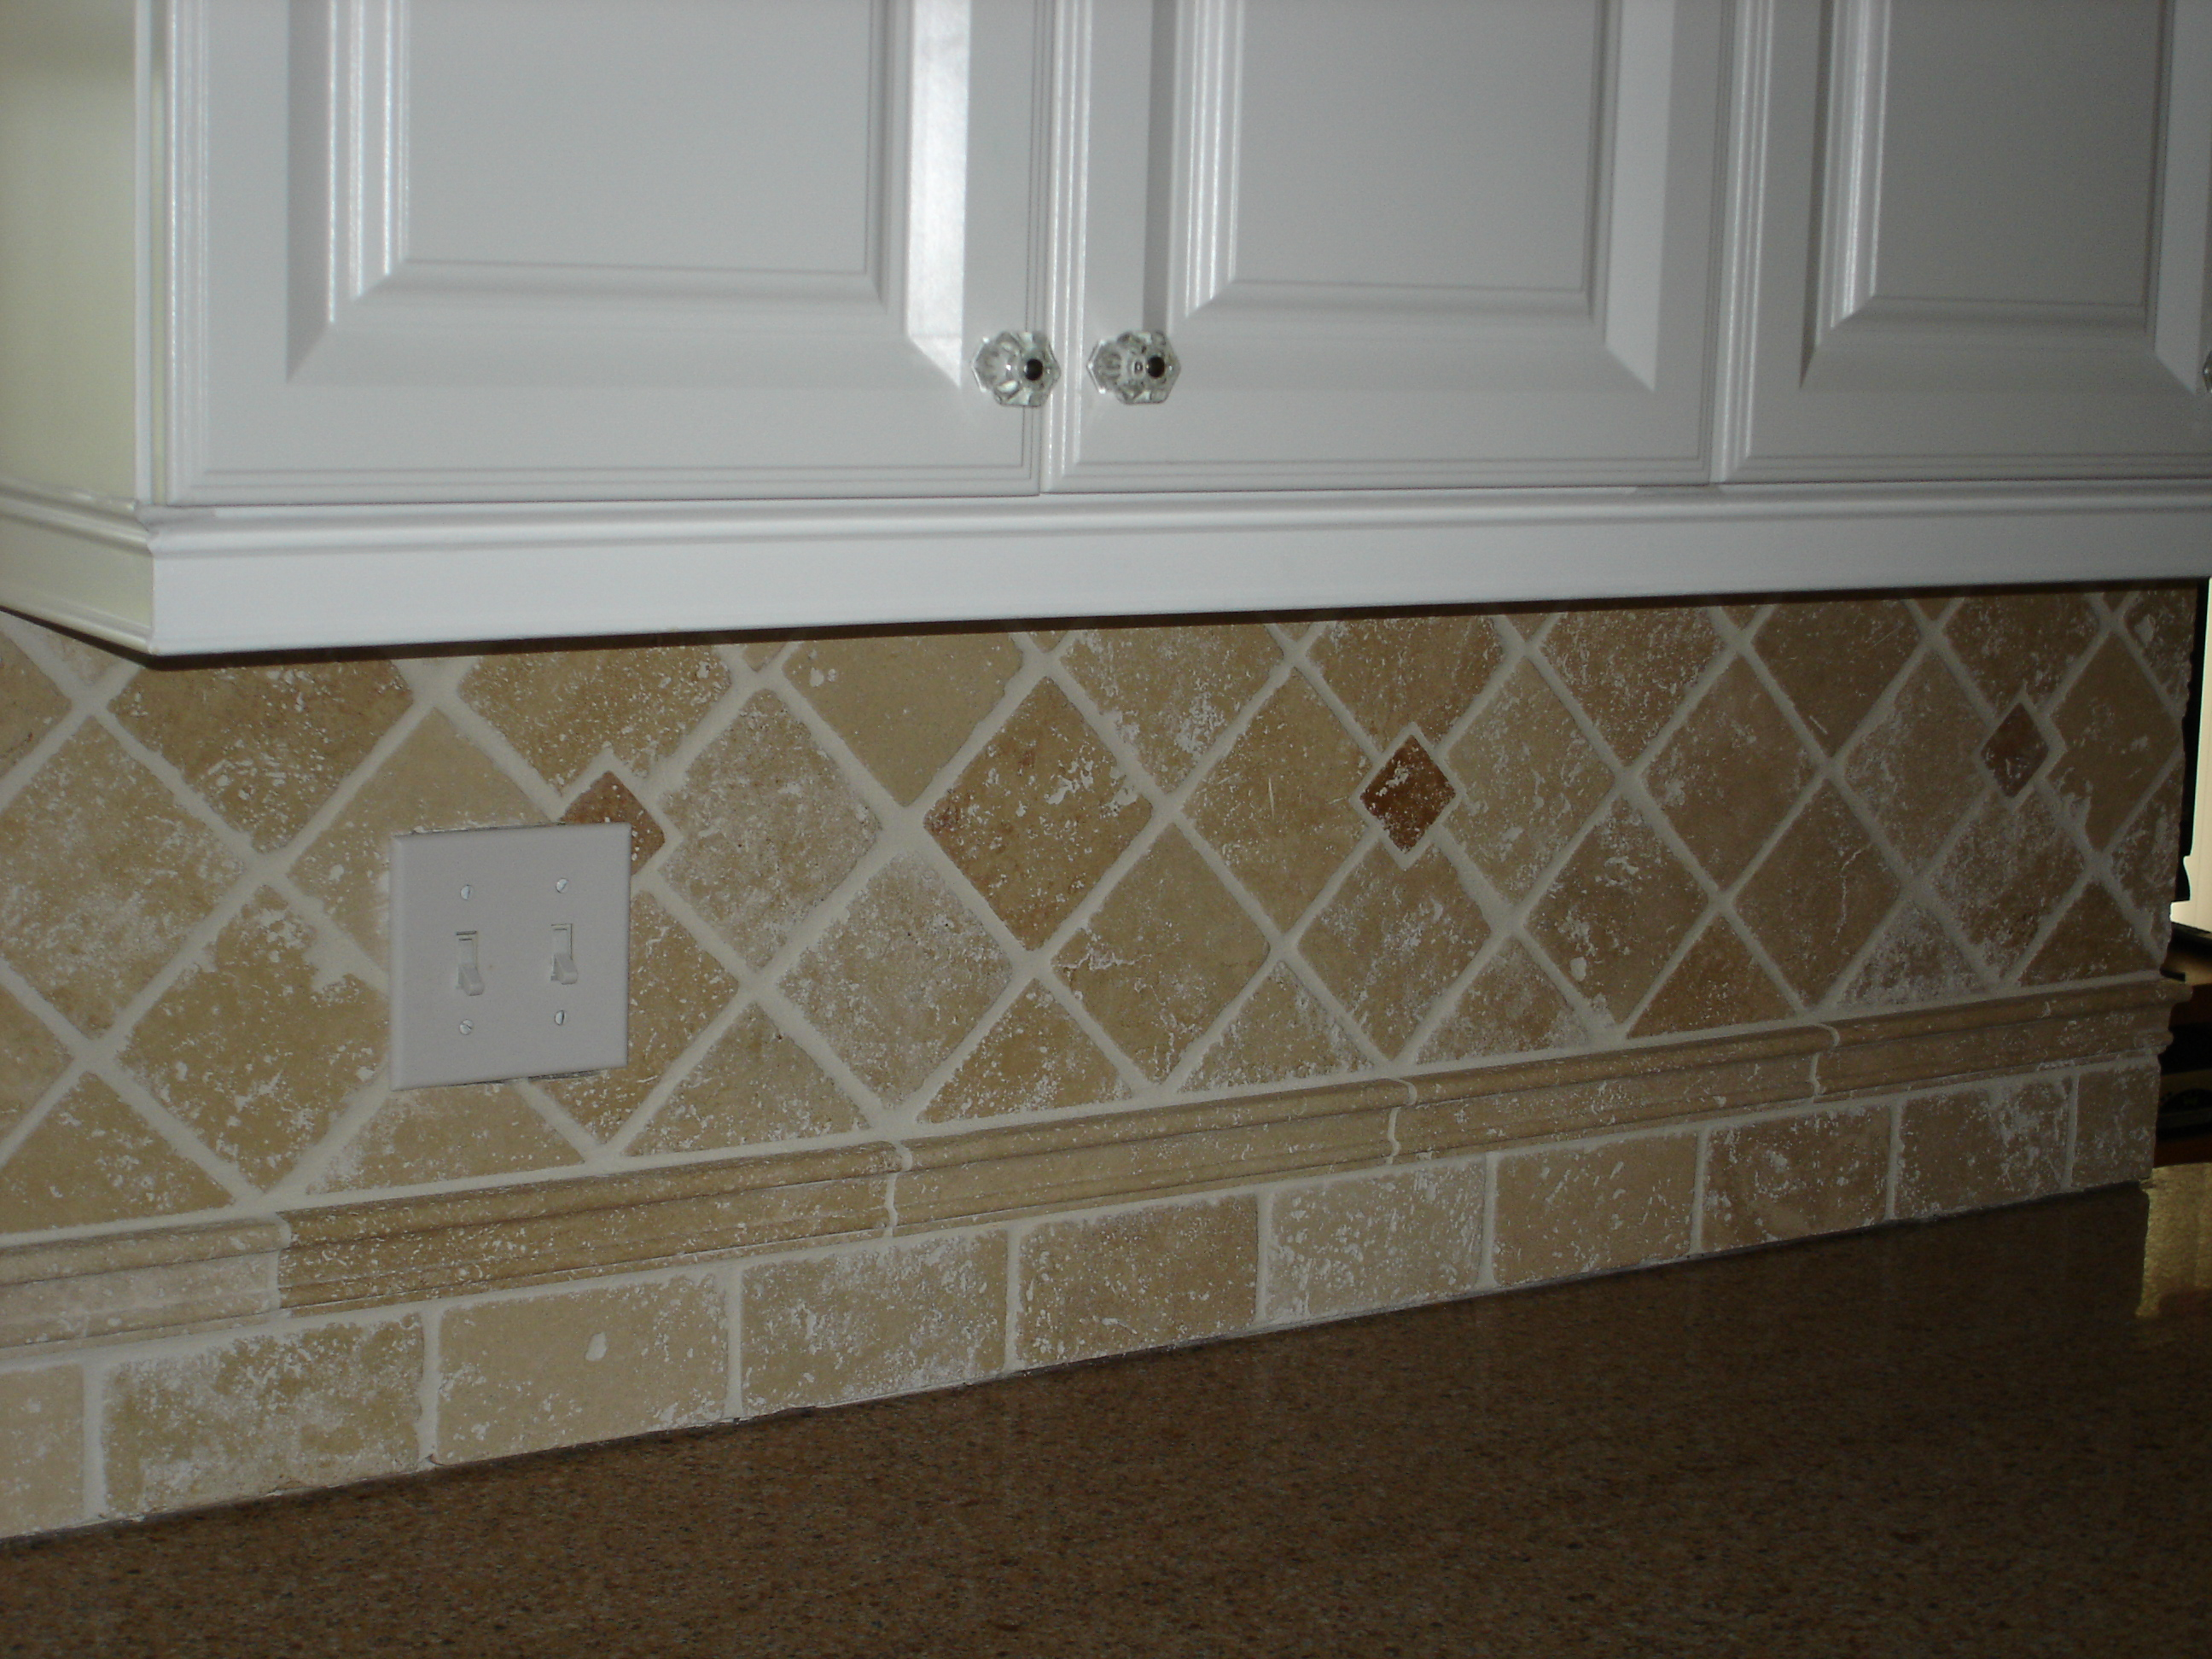 tiles backsplash ideas backsplash tile - Backsplash Tile Ideas